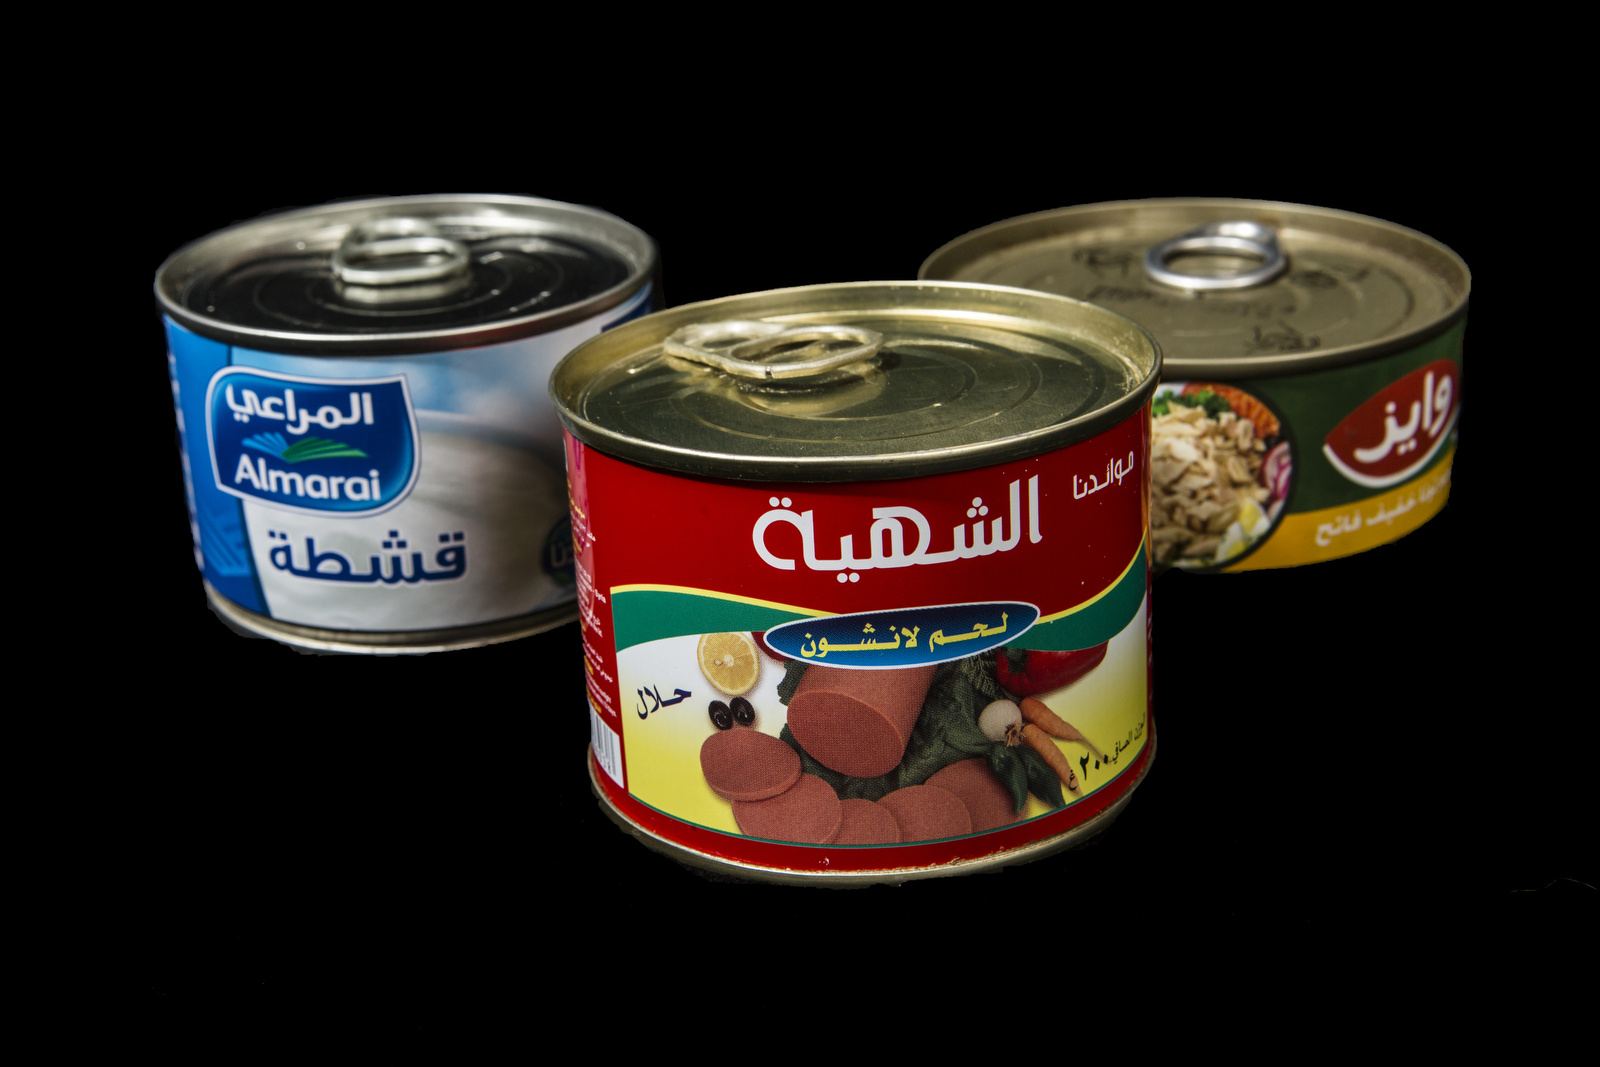 On rare occasions, Nicolas Henin was given a can of tuna or milk cream, though most often he ate canned luncheon meat while he was held for nearly a year by ISIS. Henin is a French national who was working as a journalist in Syria when he was captured.